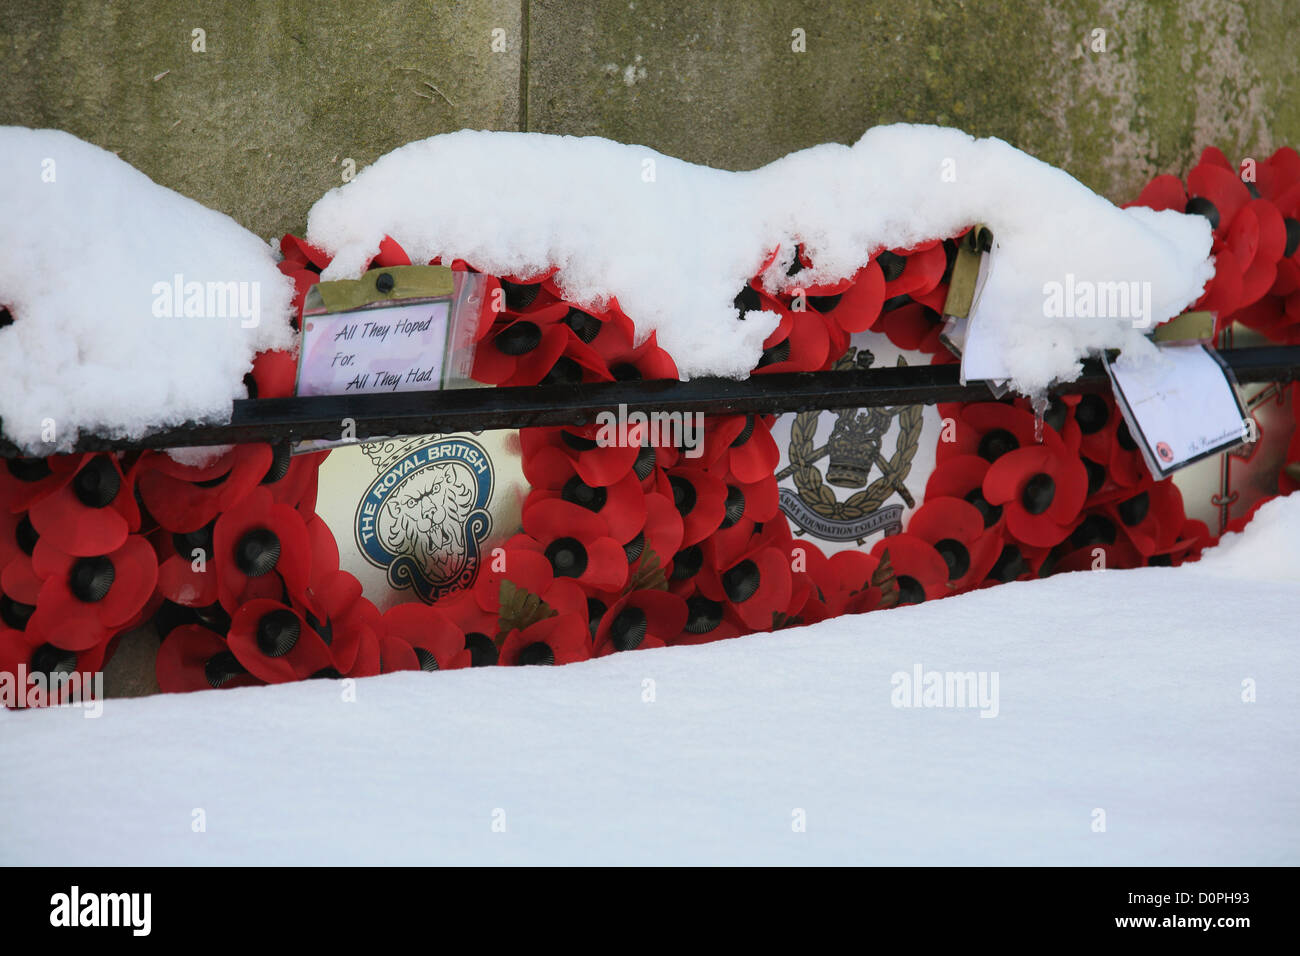 Rememberance Day poppy wreaths at Harrogate at cenotaph - Stock Image